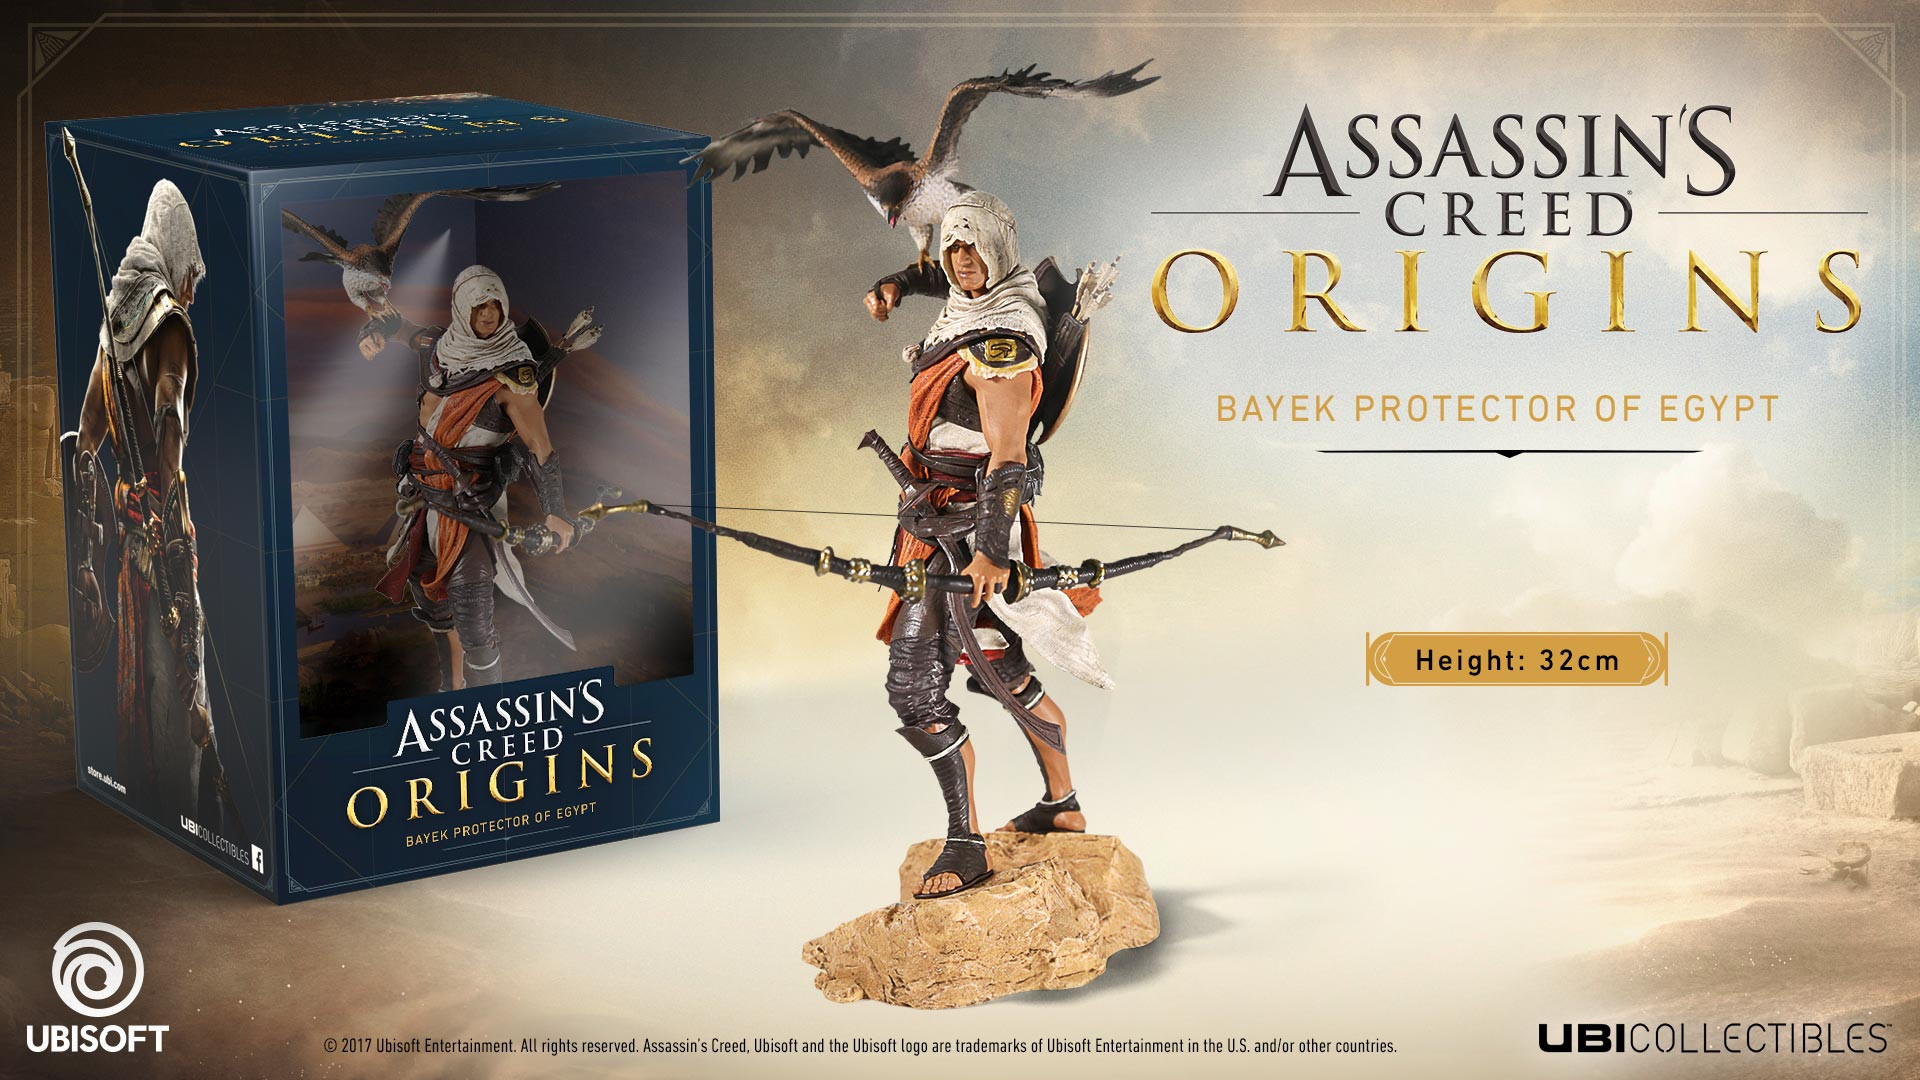 [2017-07-24] EMEA - ACO Collectible BAYEK - HEADER